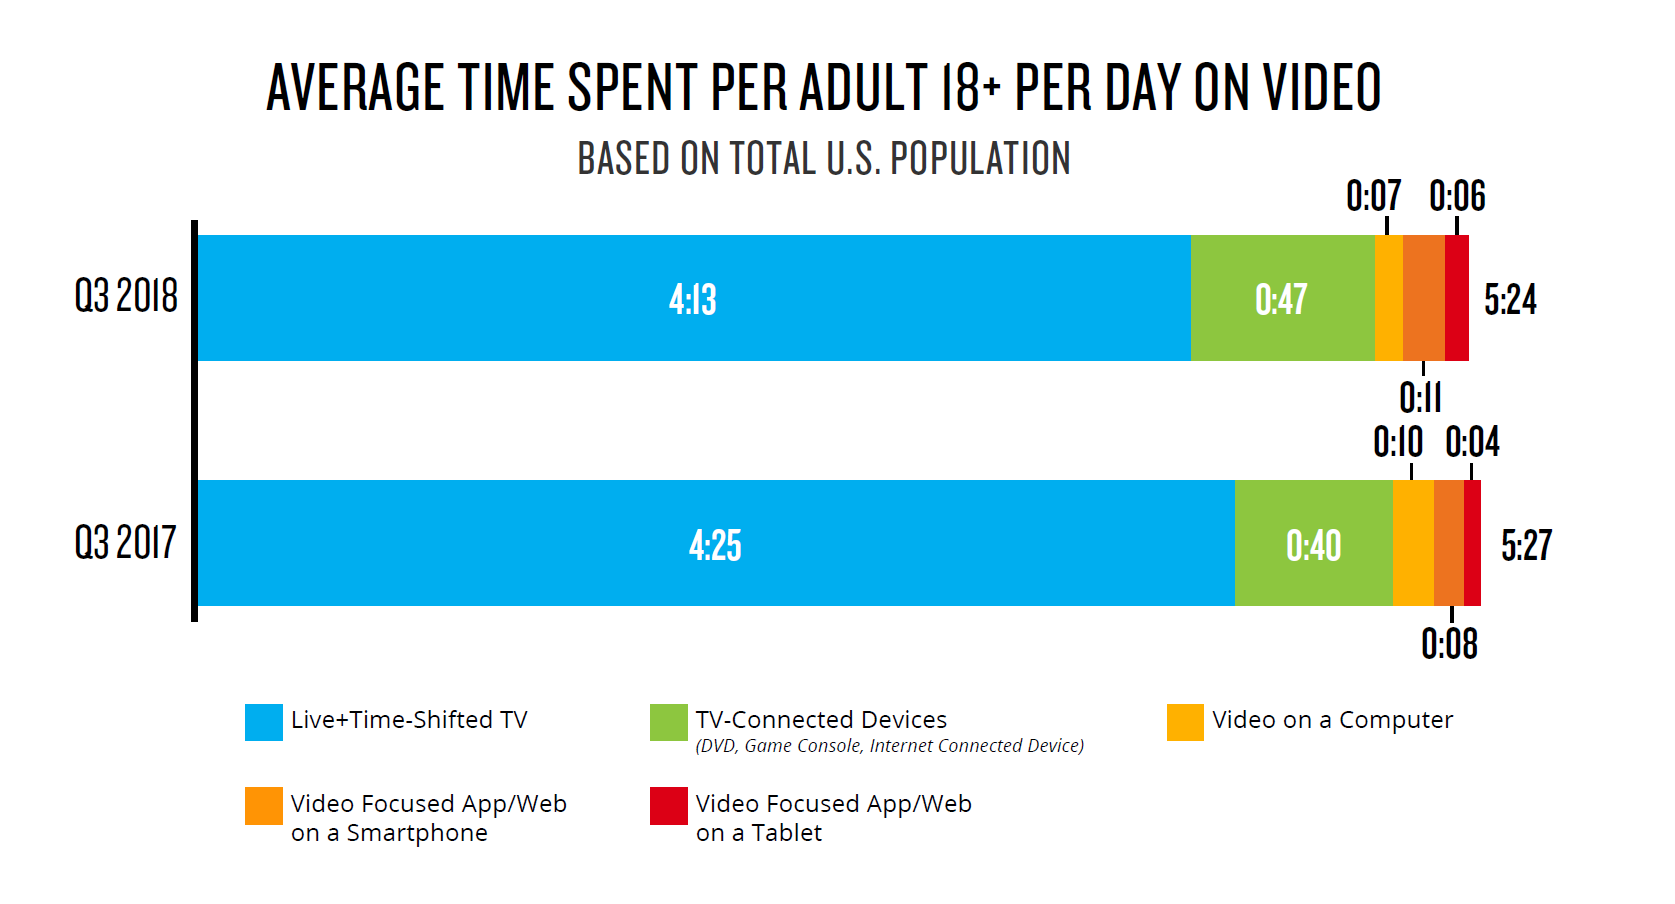 2- Average Time Spent on Video